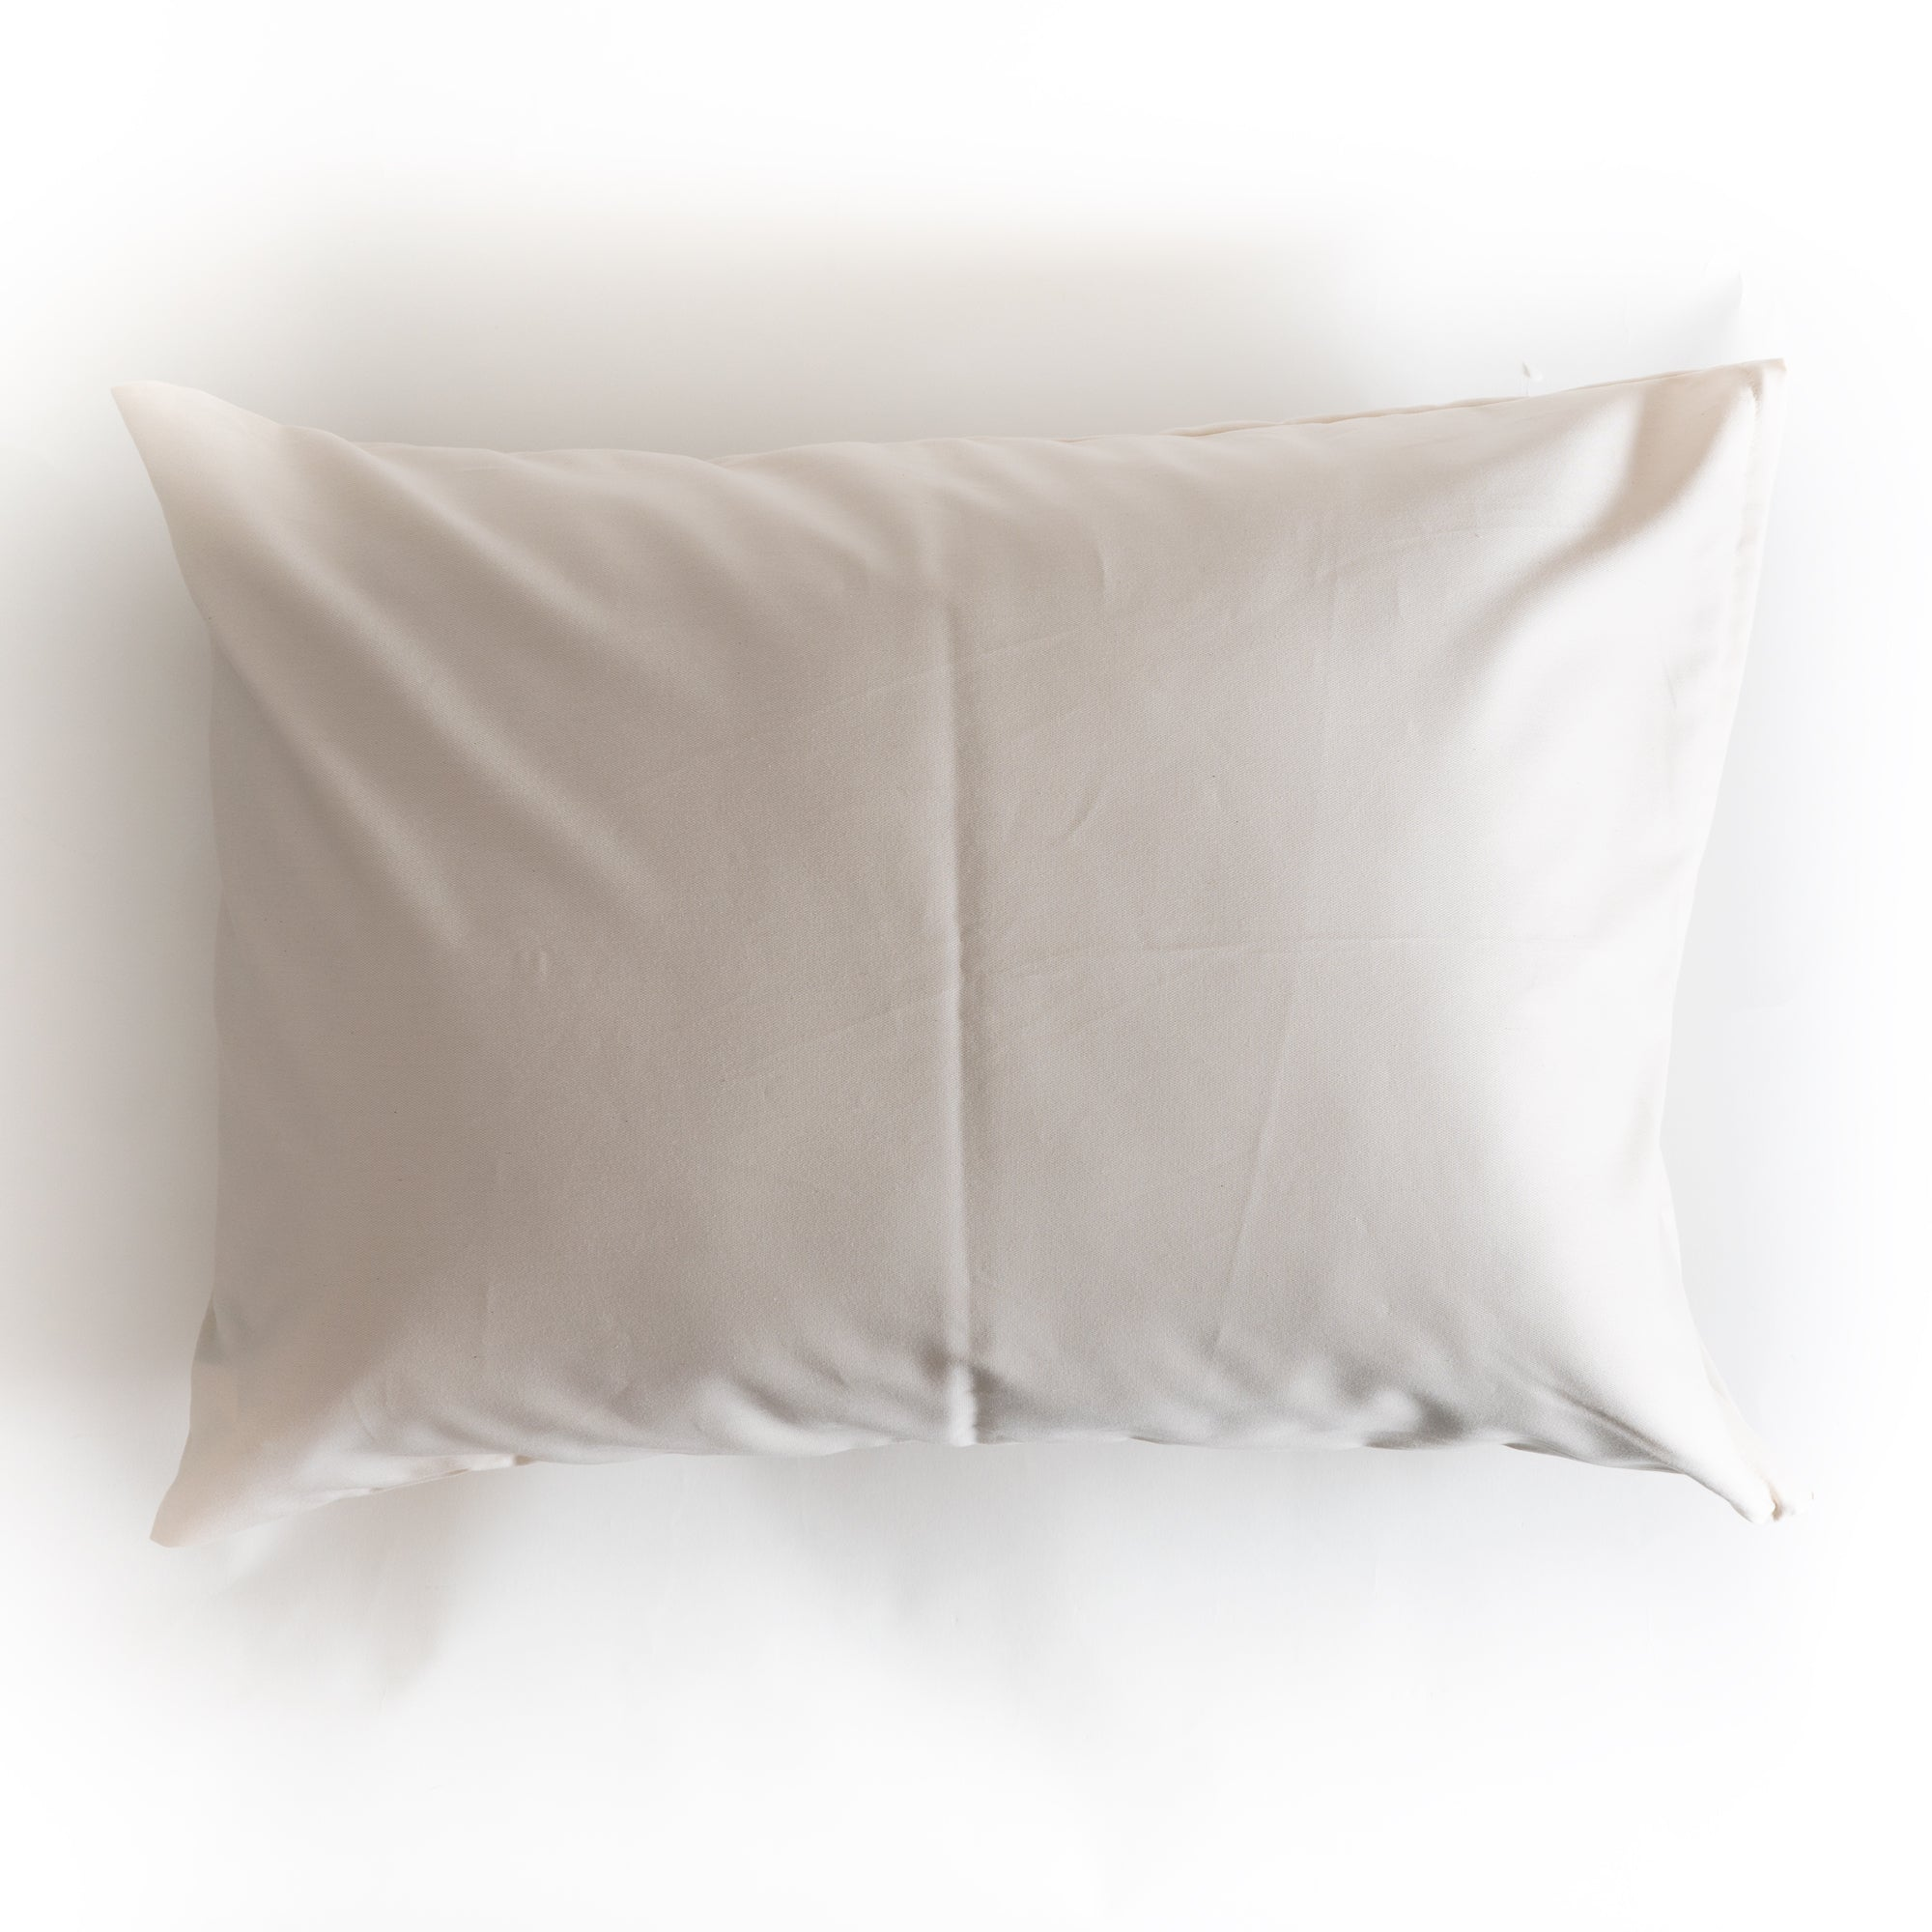 Pillow Protector for Bed Pillows